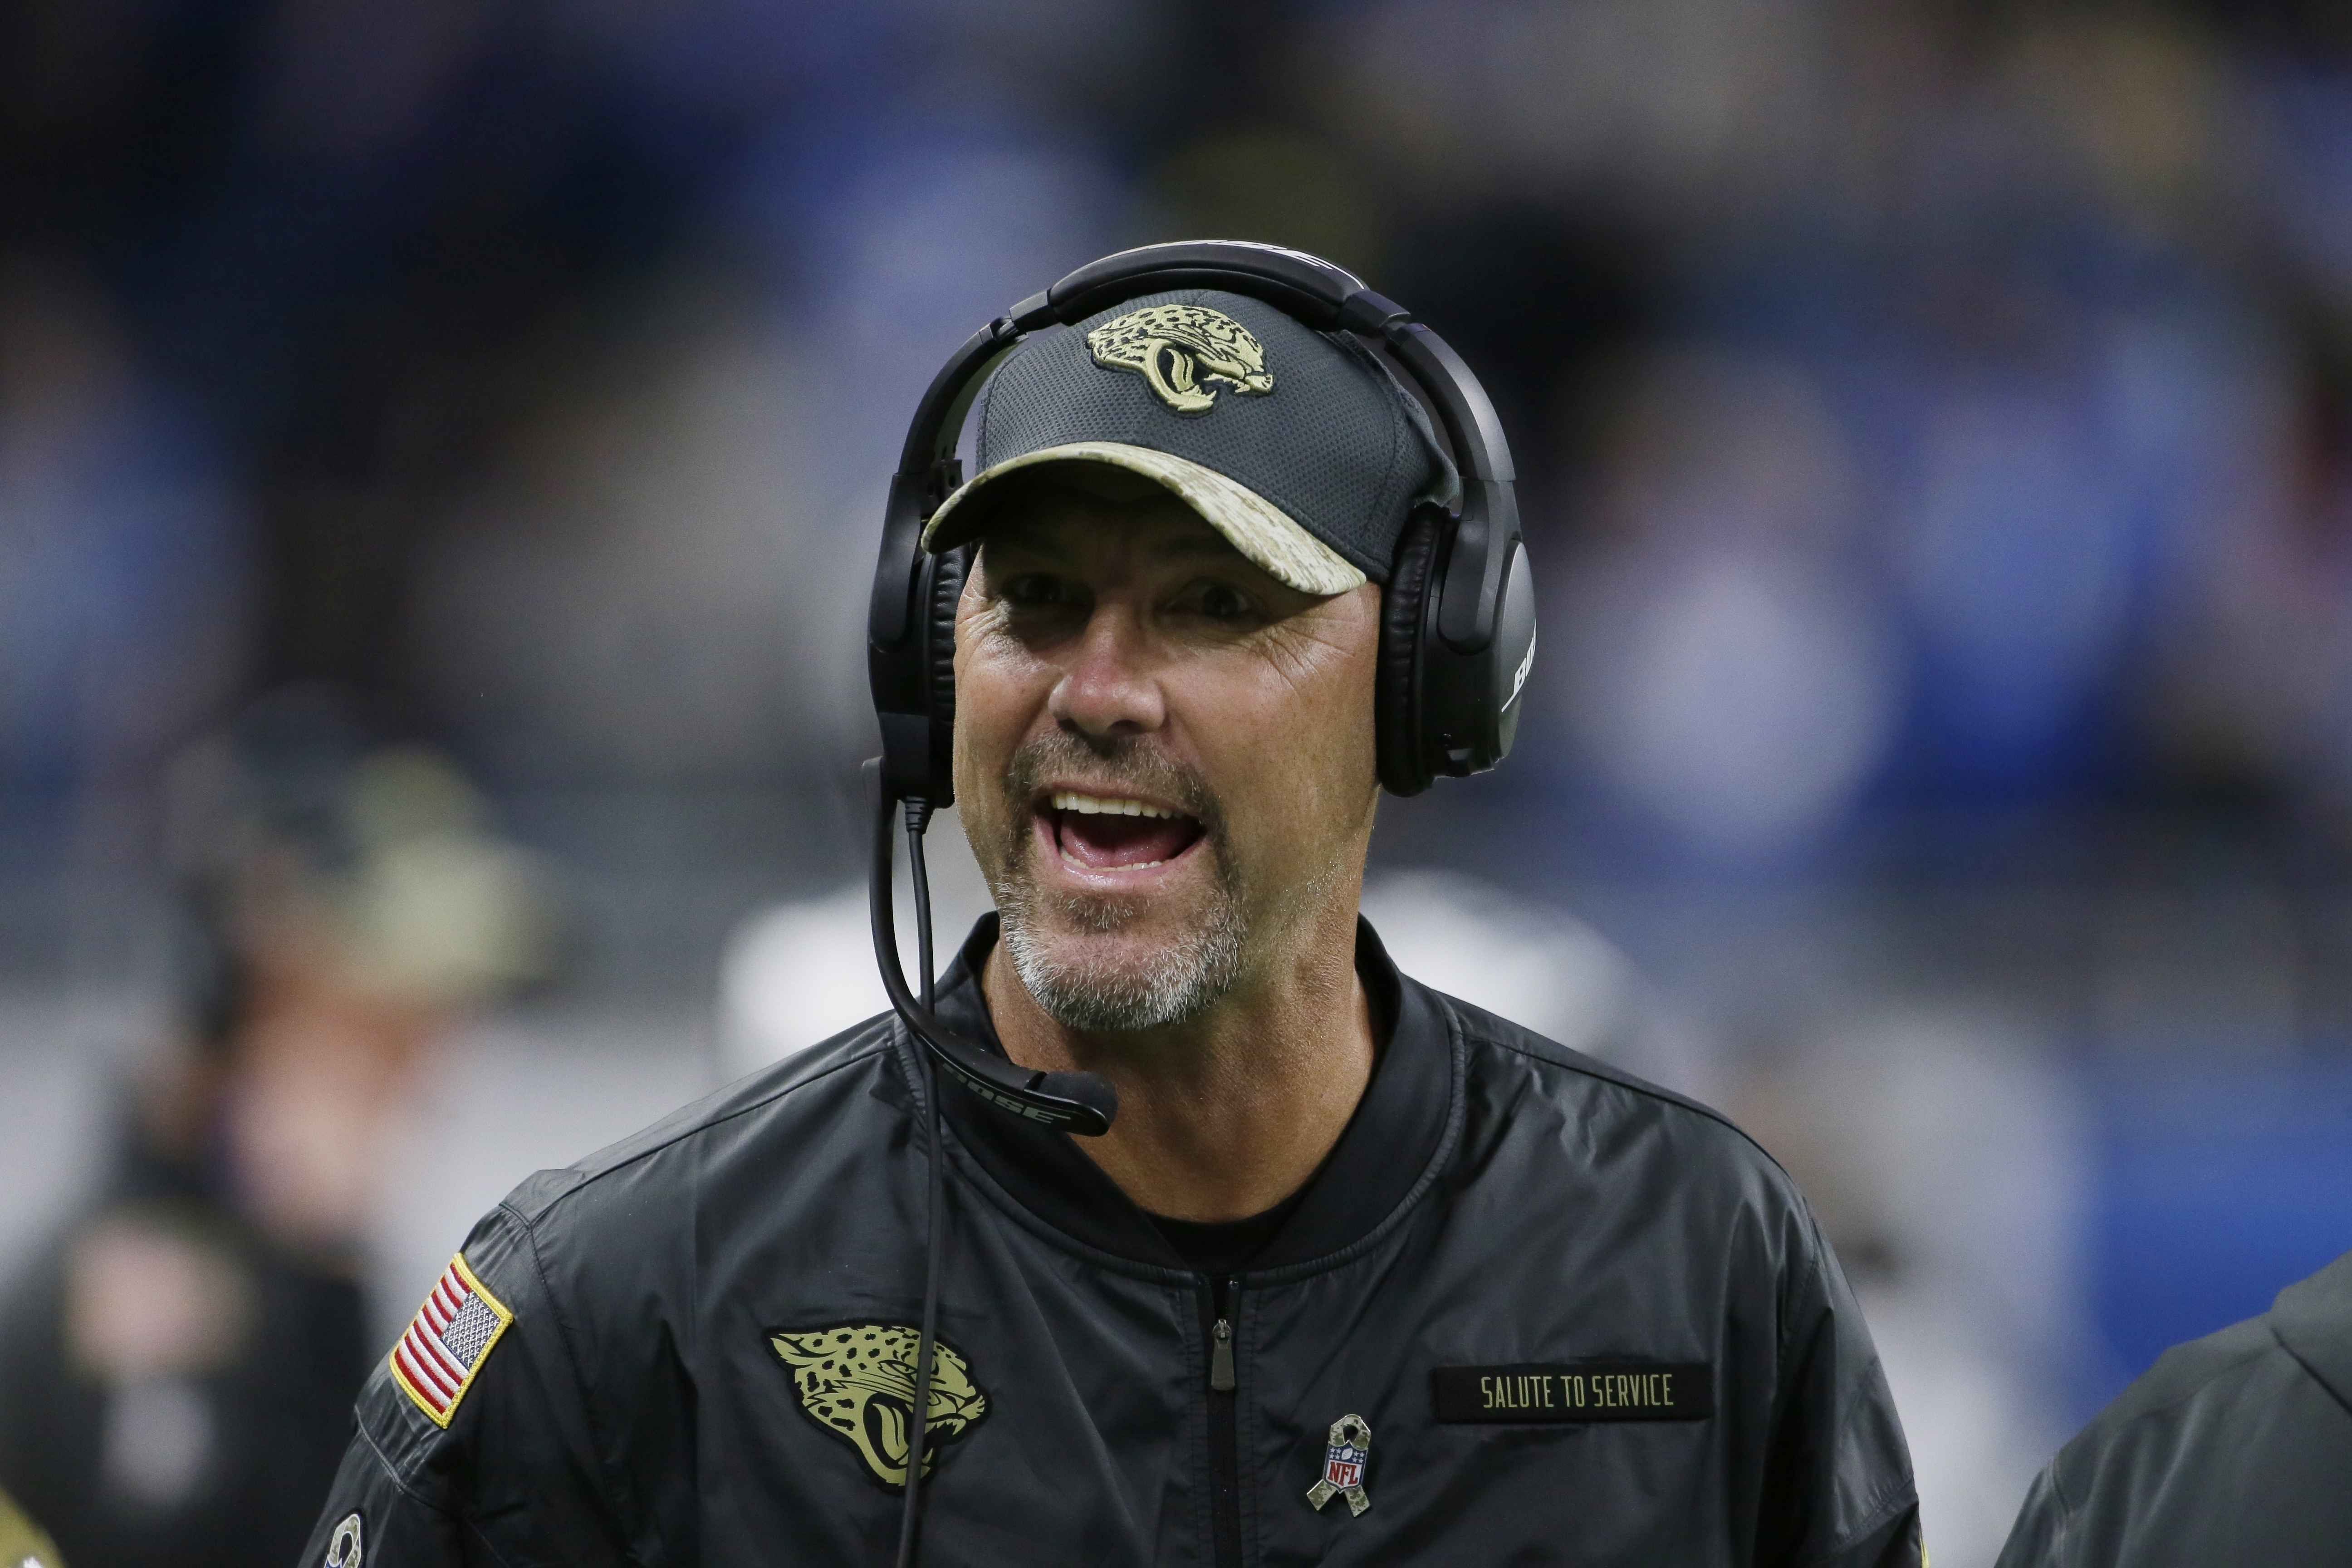 FILE - In this Nov. 20, 2016, file photo, Jacksonville Jaguars head coach Gus Bradley reacts in the bench area during the second half of an NFL football game against the Detroit Lions in Detroit. The Jaguars have fired Bradley, ending the least successful